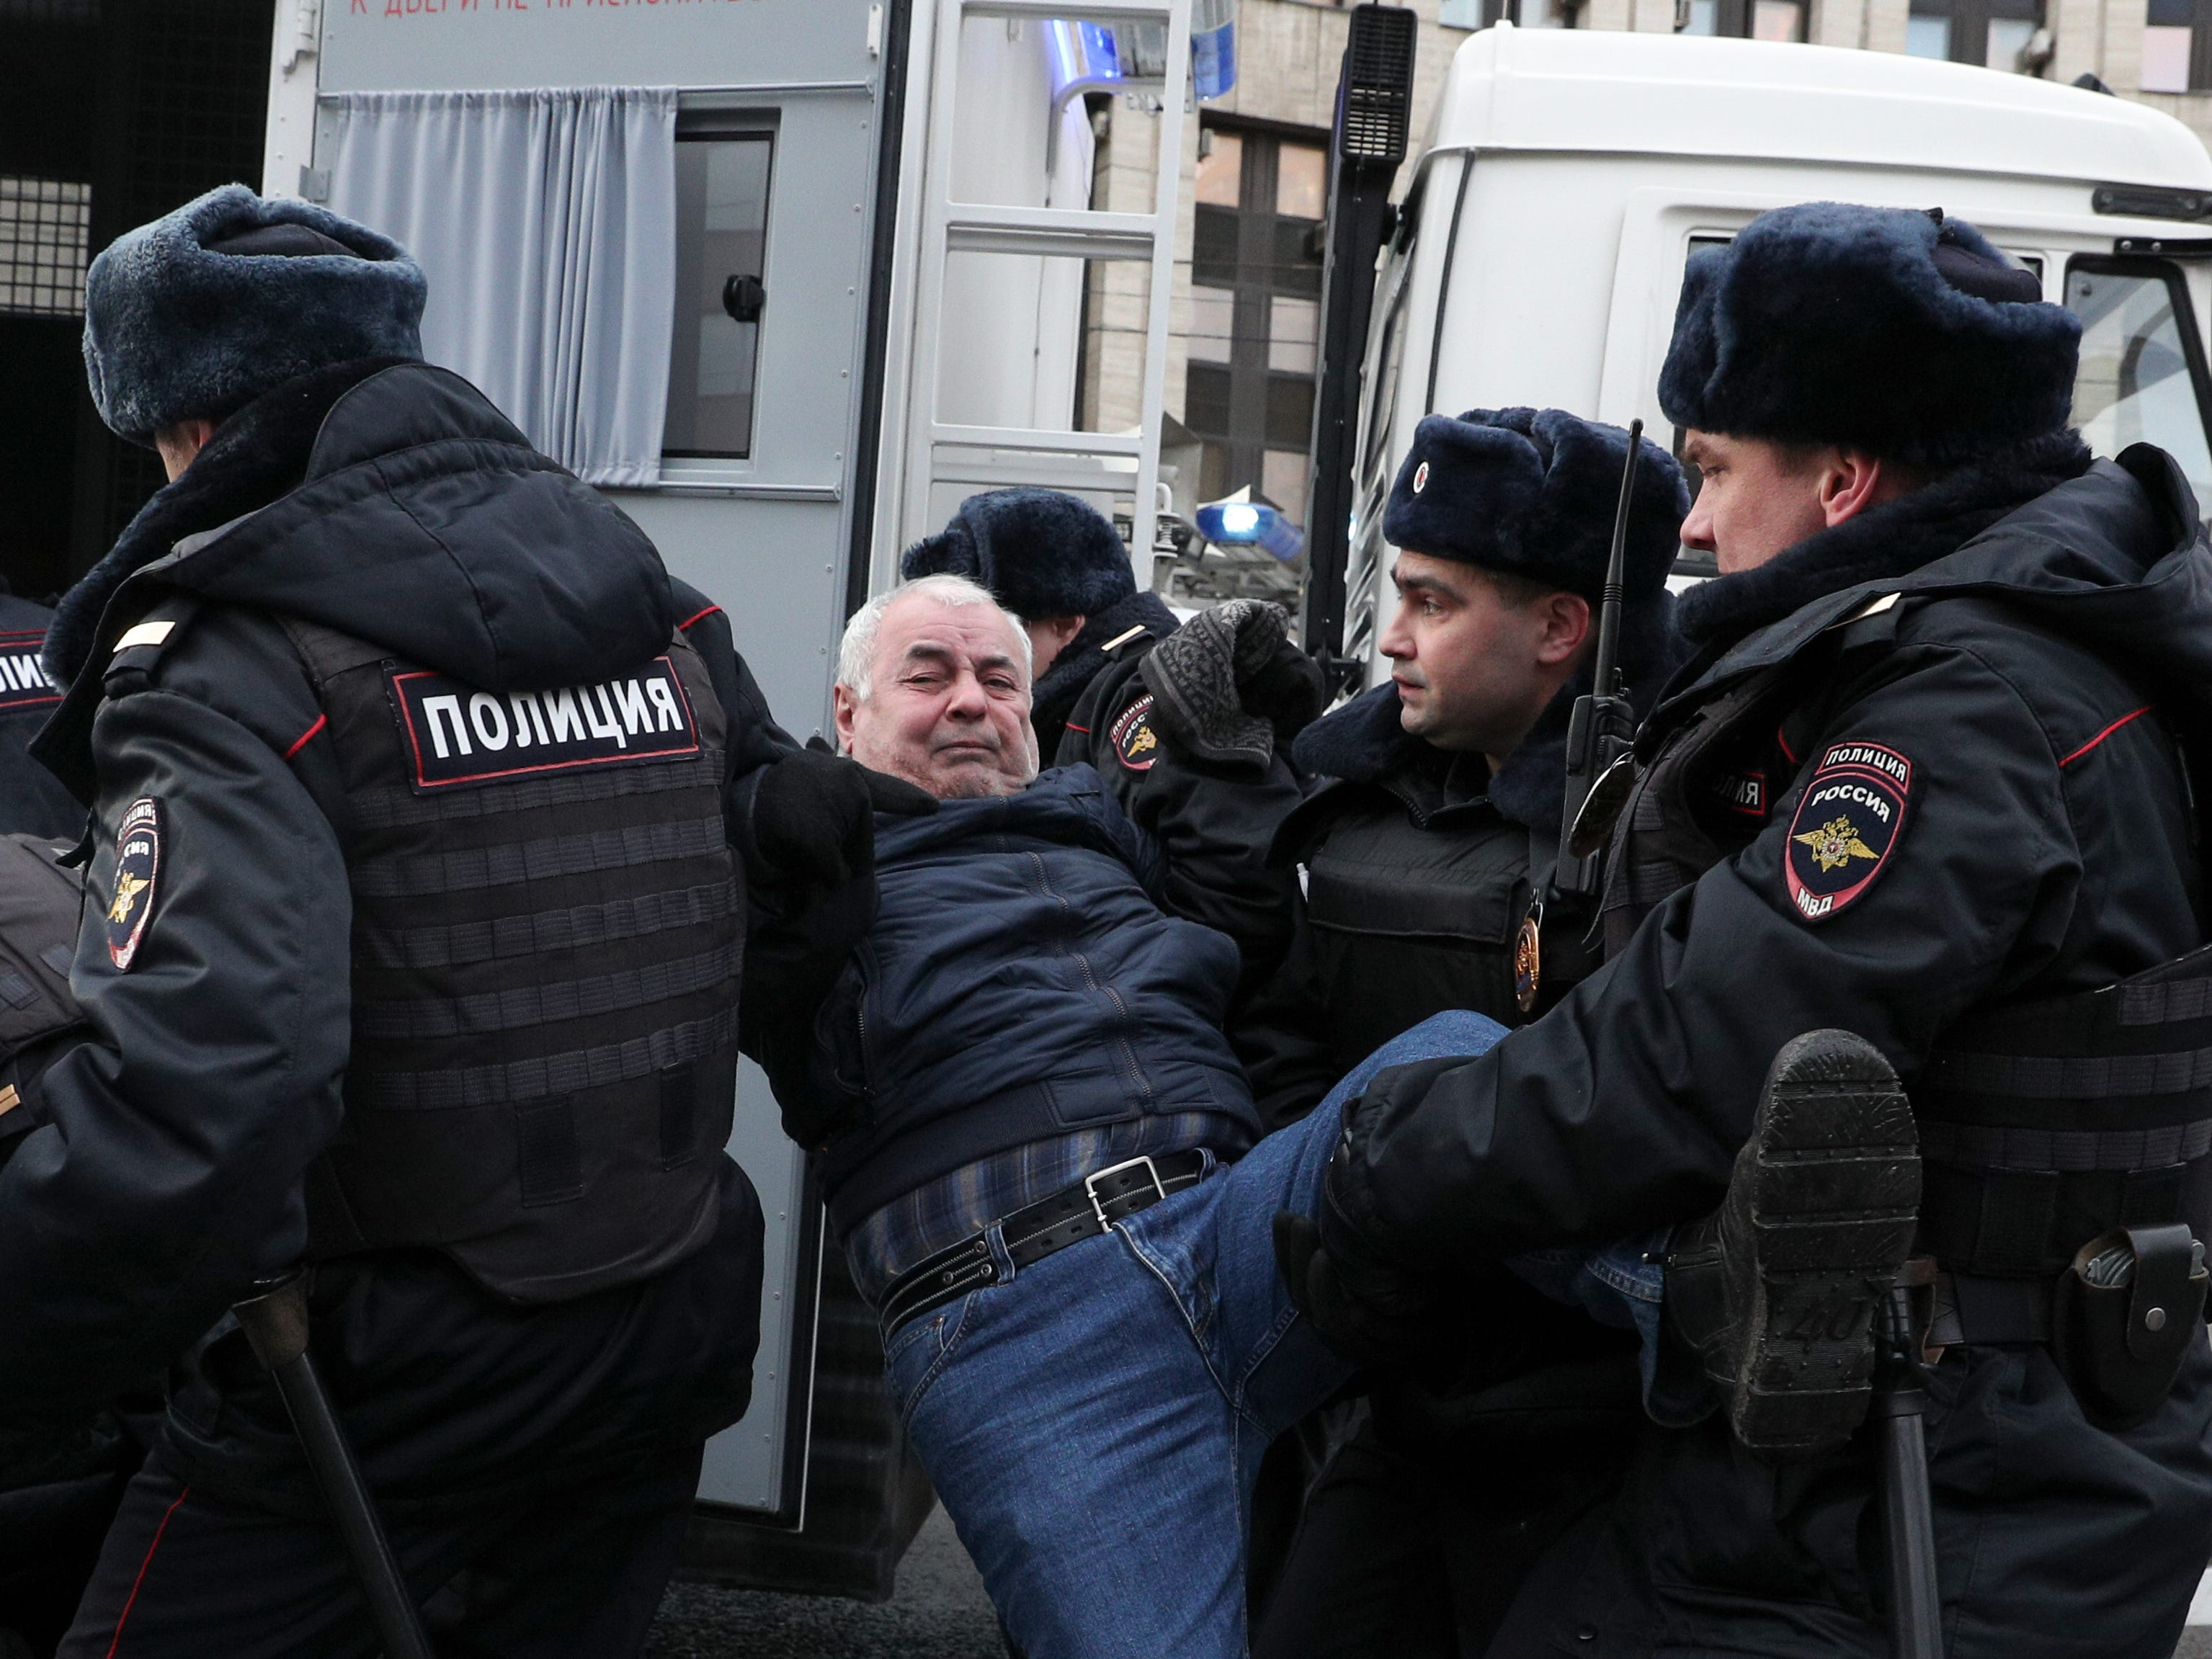 Police officers detain a demonstrator after the Free Internet rally in response to a bill making its way through parliament calling for all internet traffic to be routed through servers in Russia and making VPNs (virtual private networks) ineffective, in Moscow, Russia, Sunday, March 10, 2019. Several thousand people have rallied in Moscow to protest legislation that they fear could lead to widespread censorship of the internet.